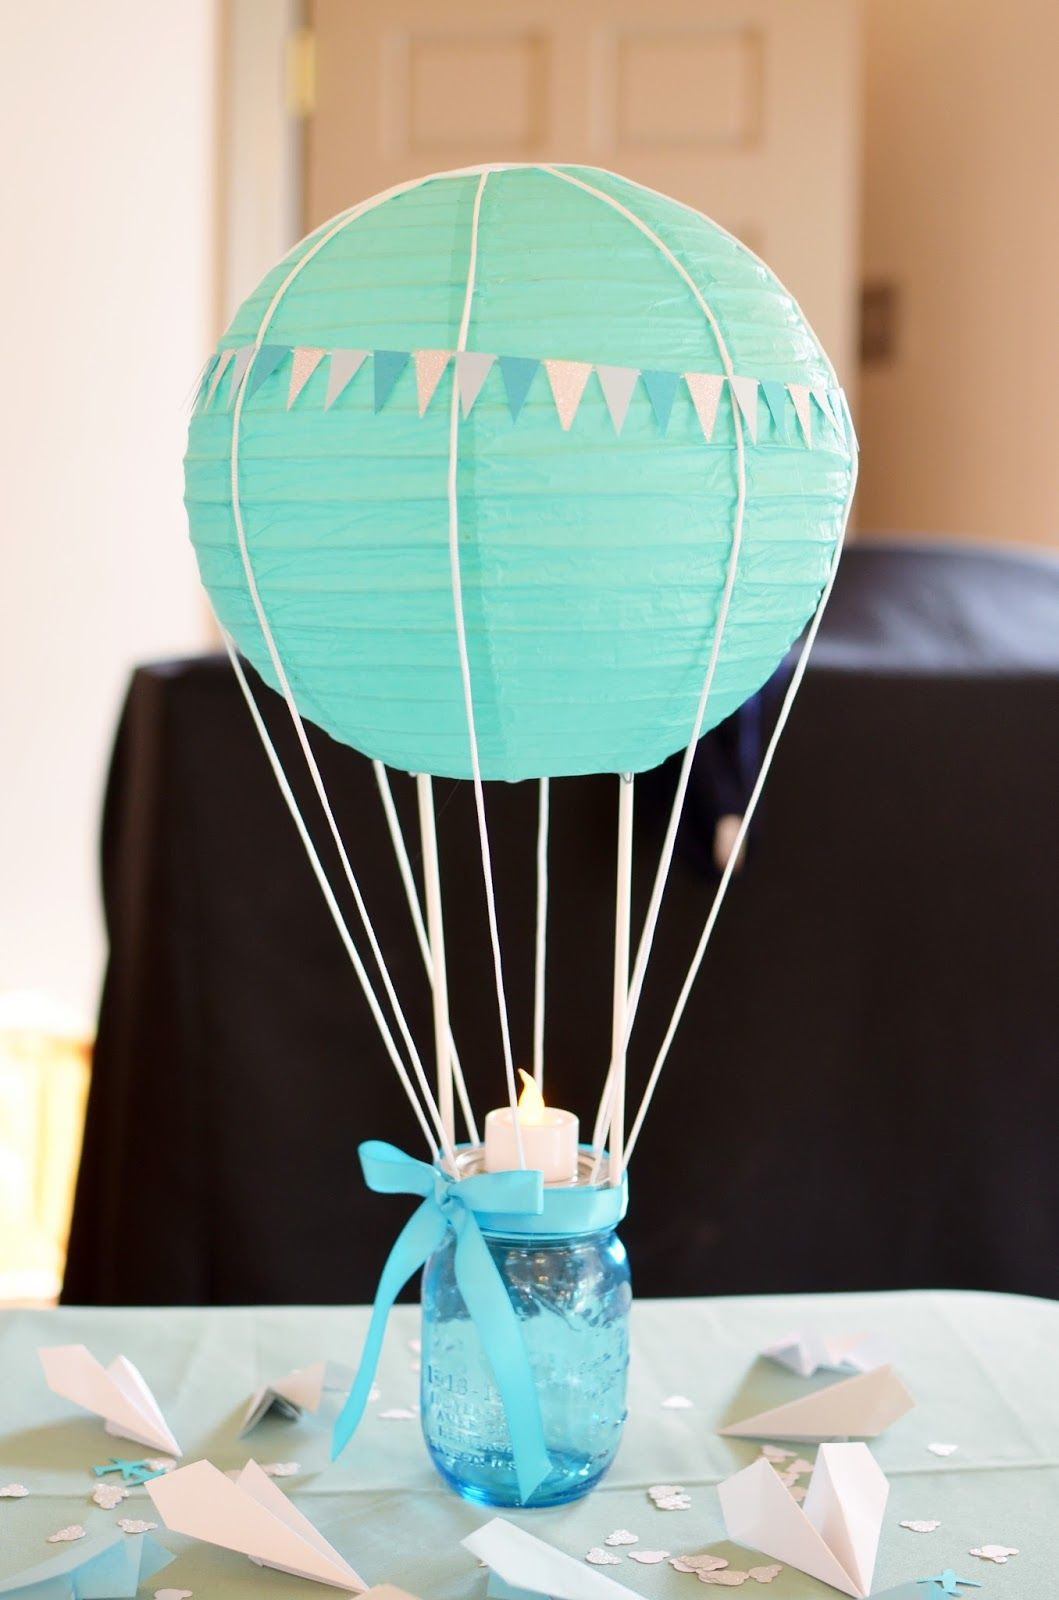 Hot Air Balloon Decoration For Baby Shower Pictures Photos and Images for Facebook Tumblr